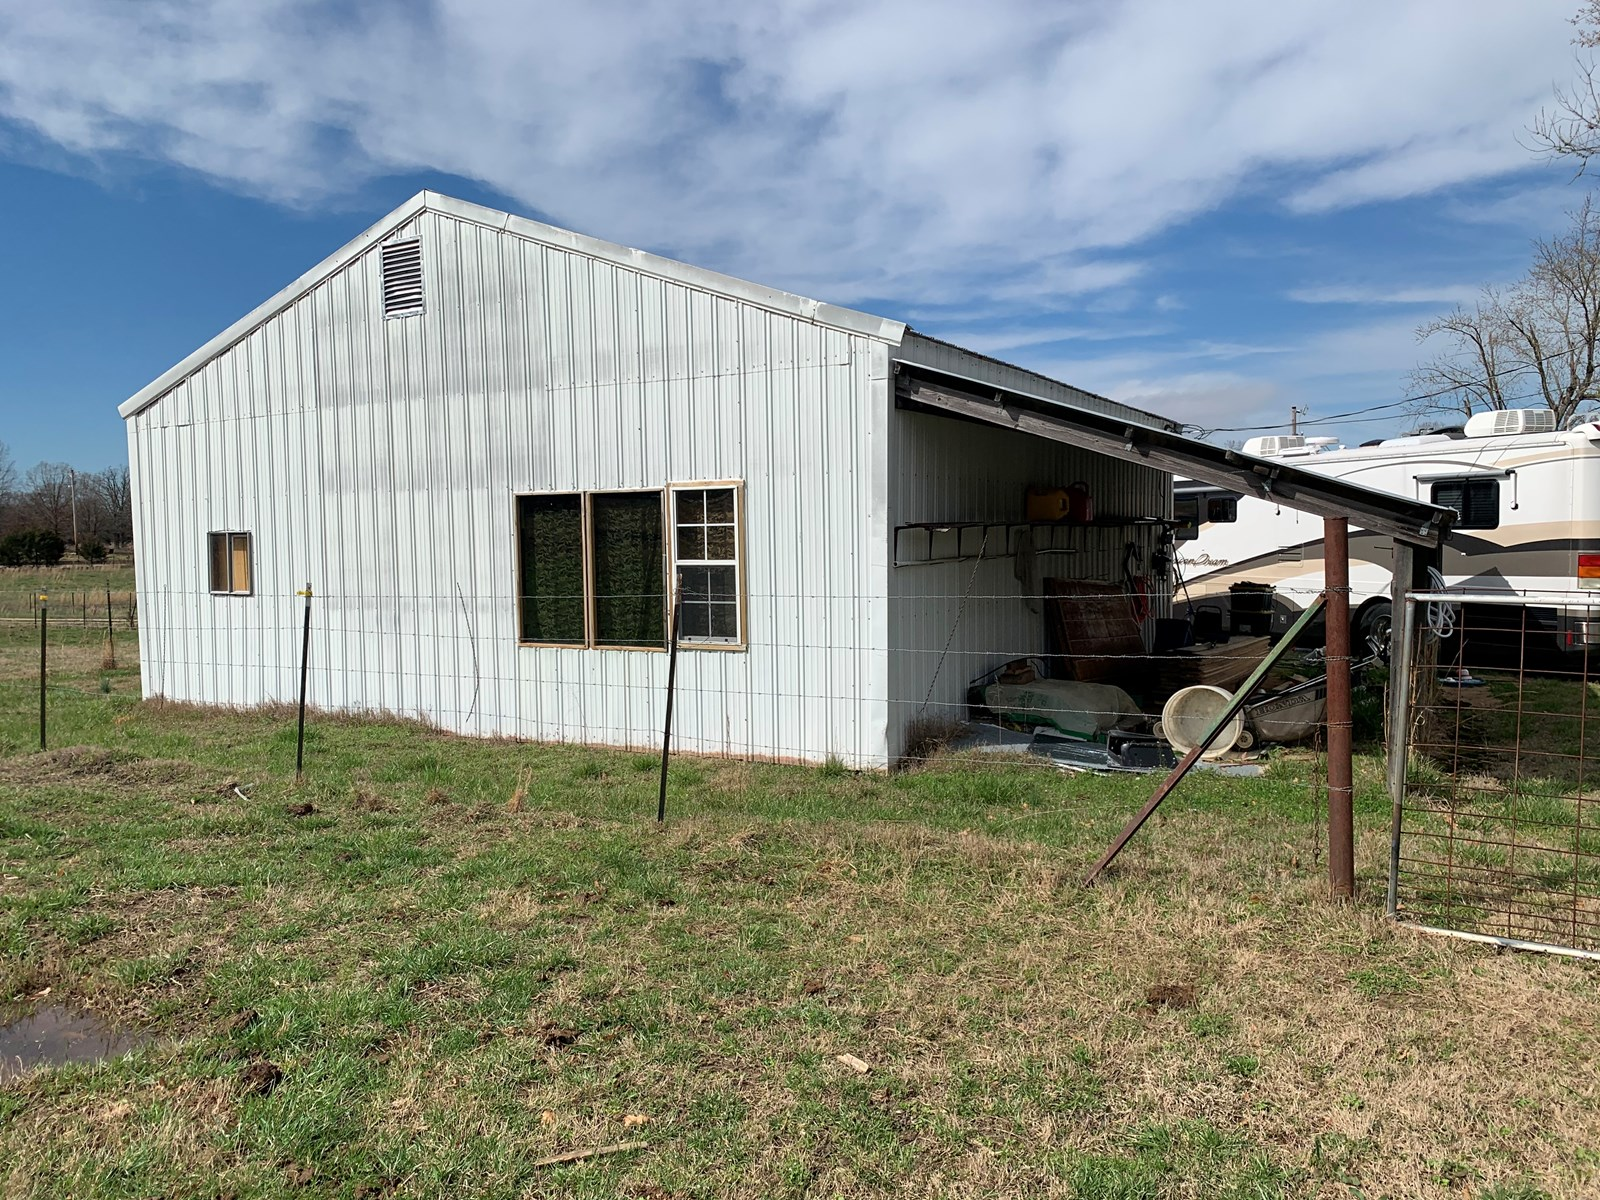 18 ACRE HOBBY FARM WITH CABIN AND SHOP FOR SALE IN MELBOURNE